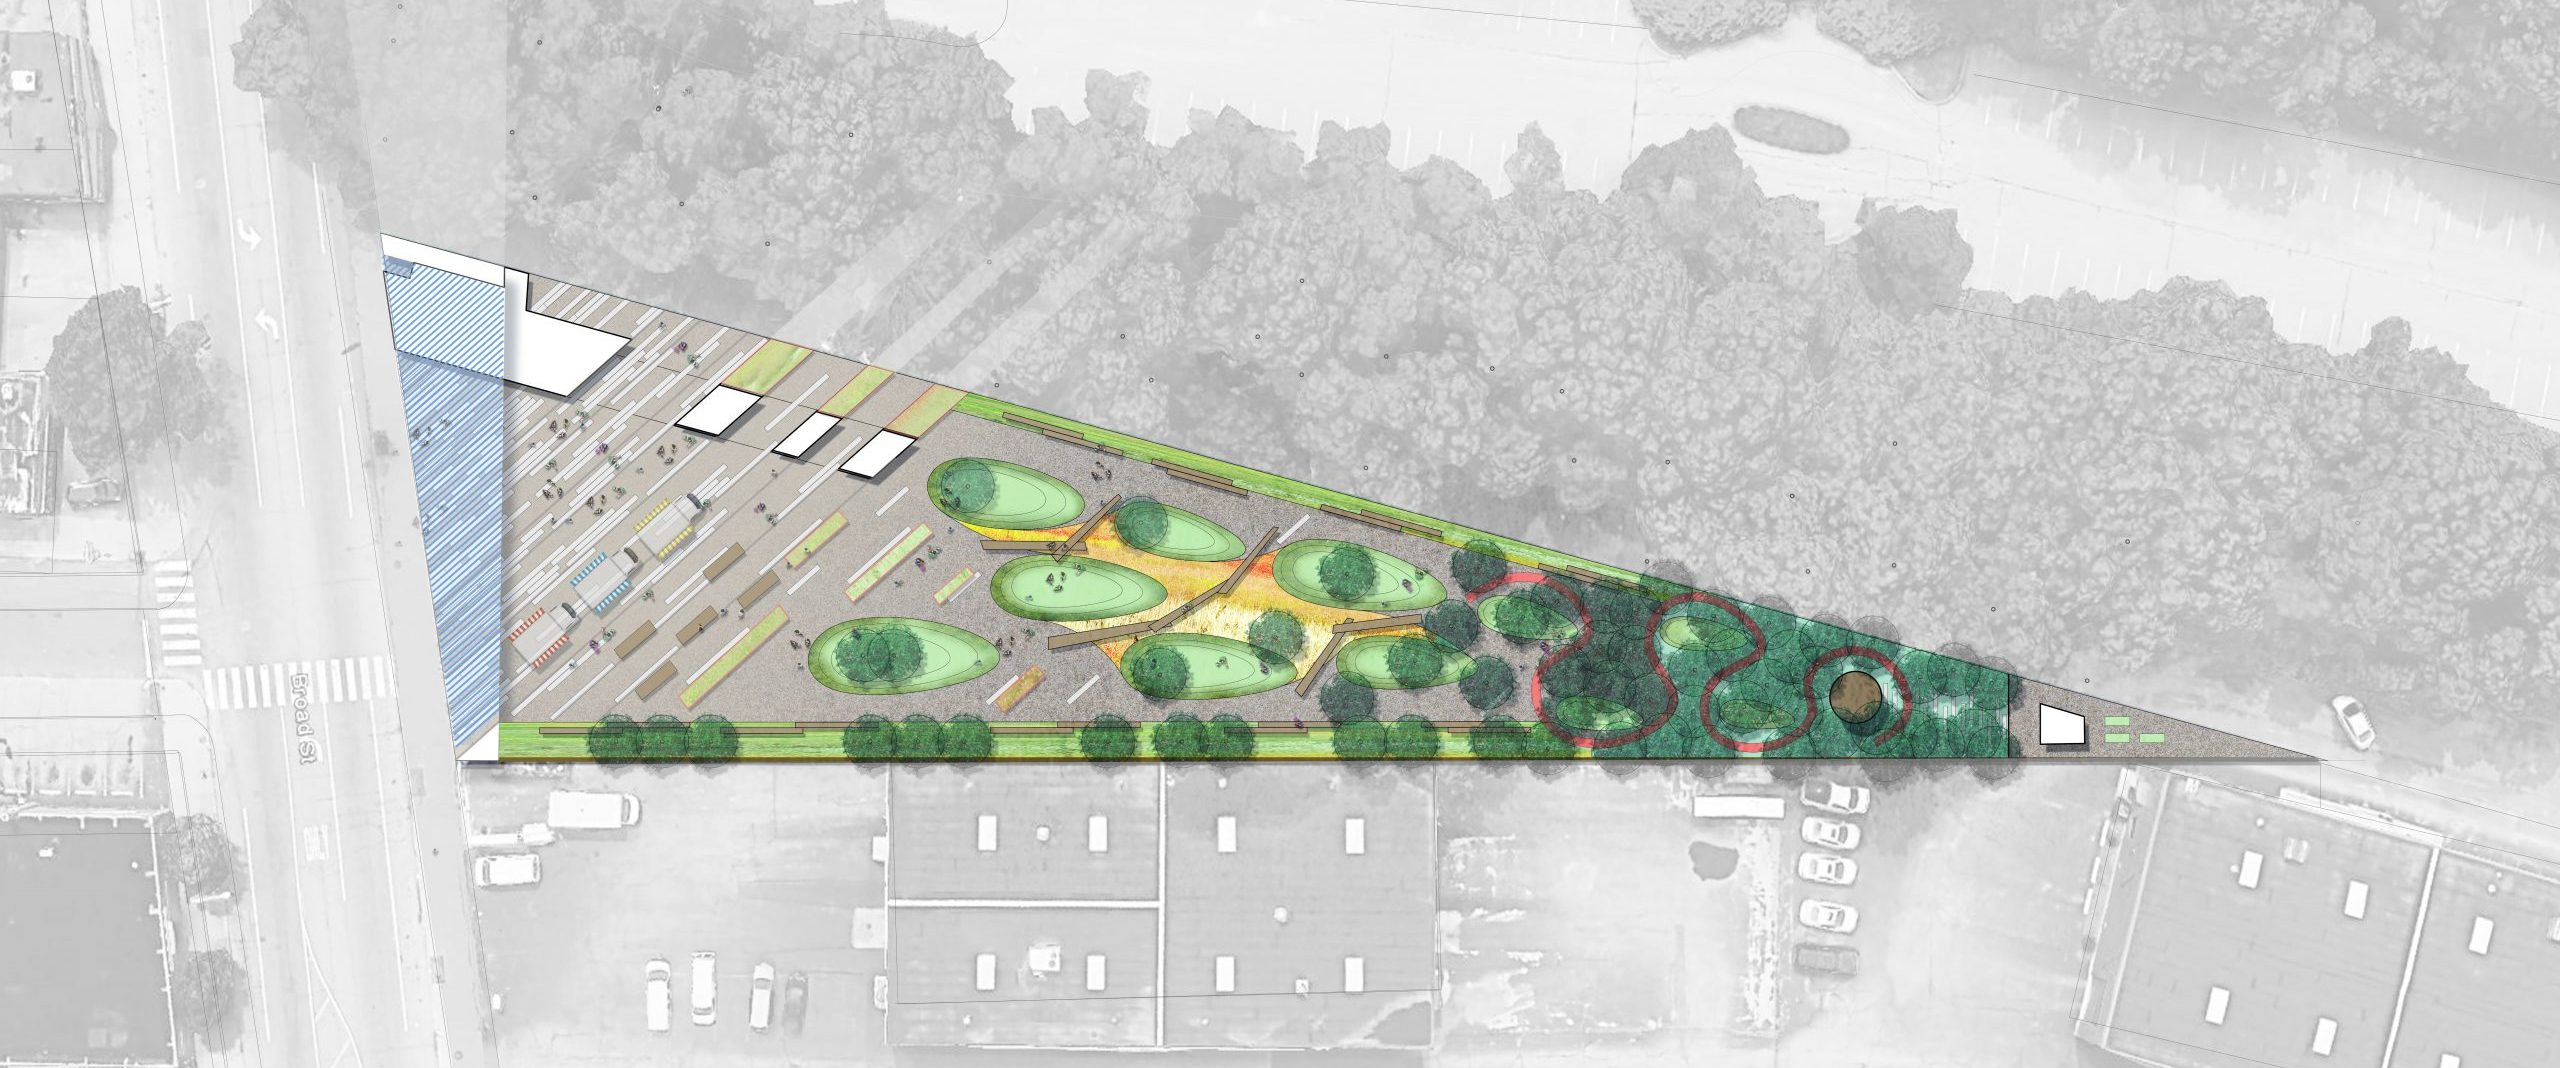 Site plan of Roger Williams Park Gateway and Visitor's Center Project on Broad Street in Providence Rhode Island Urban Design and Architecture